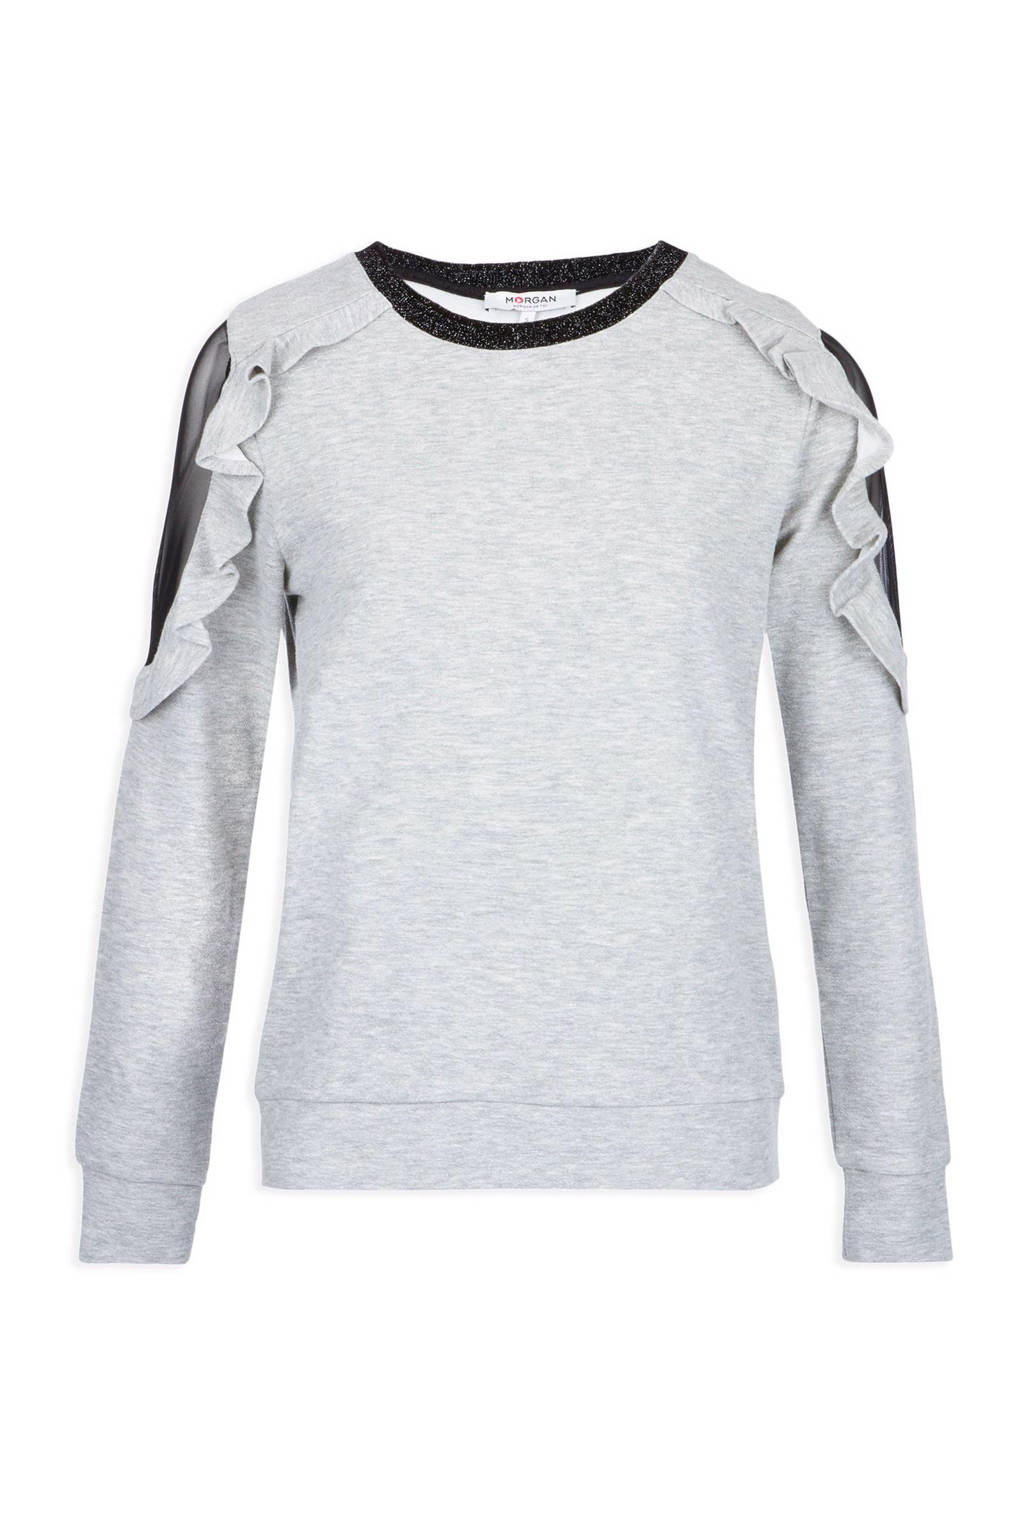 Morgan sweater met ruches, Grijs